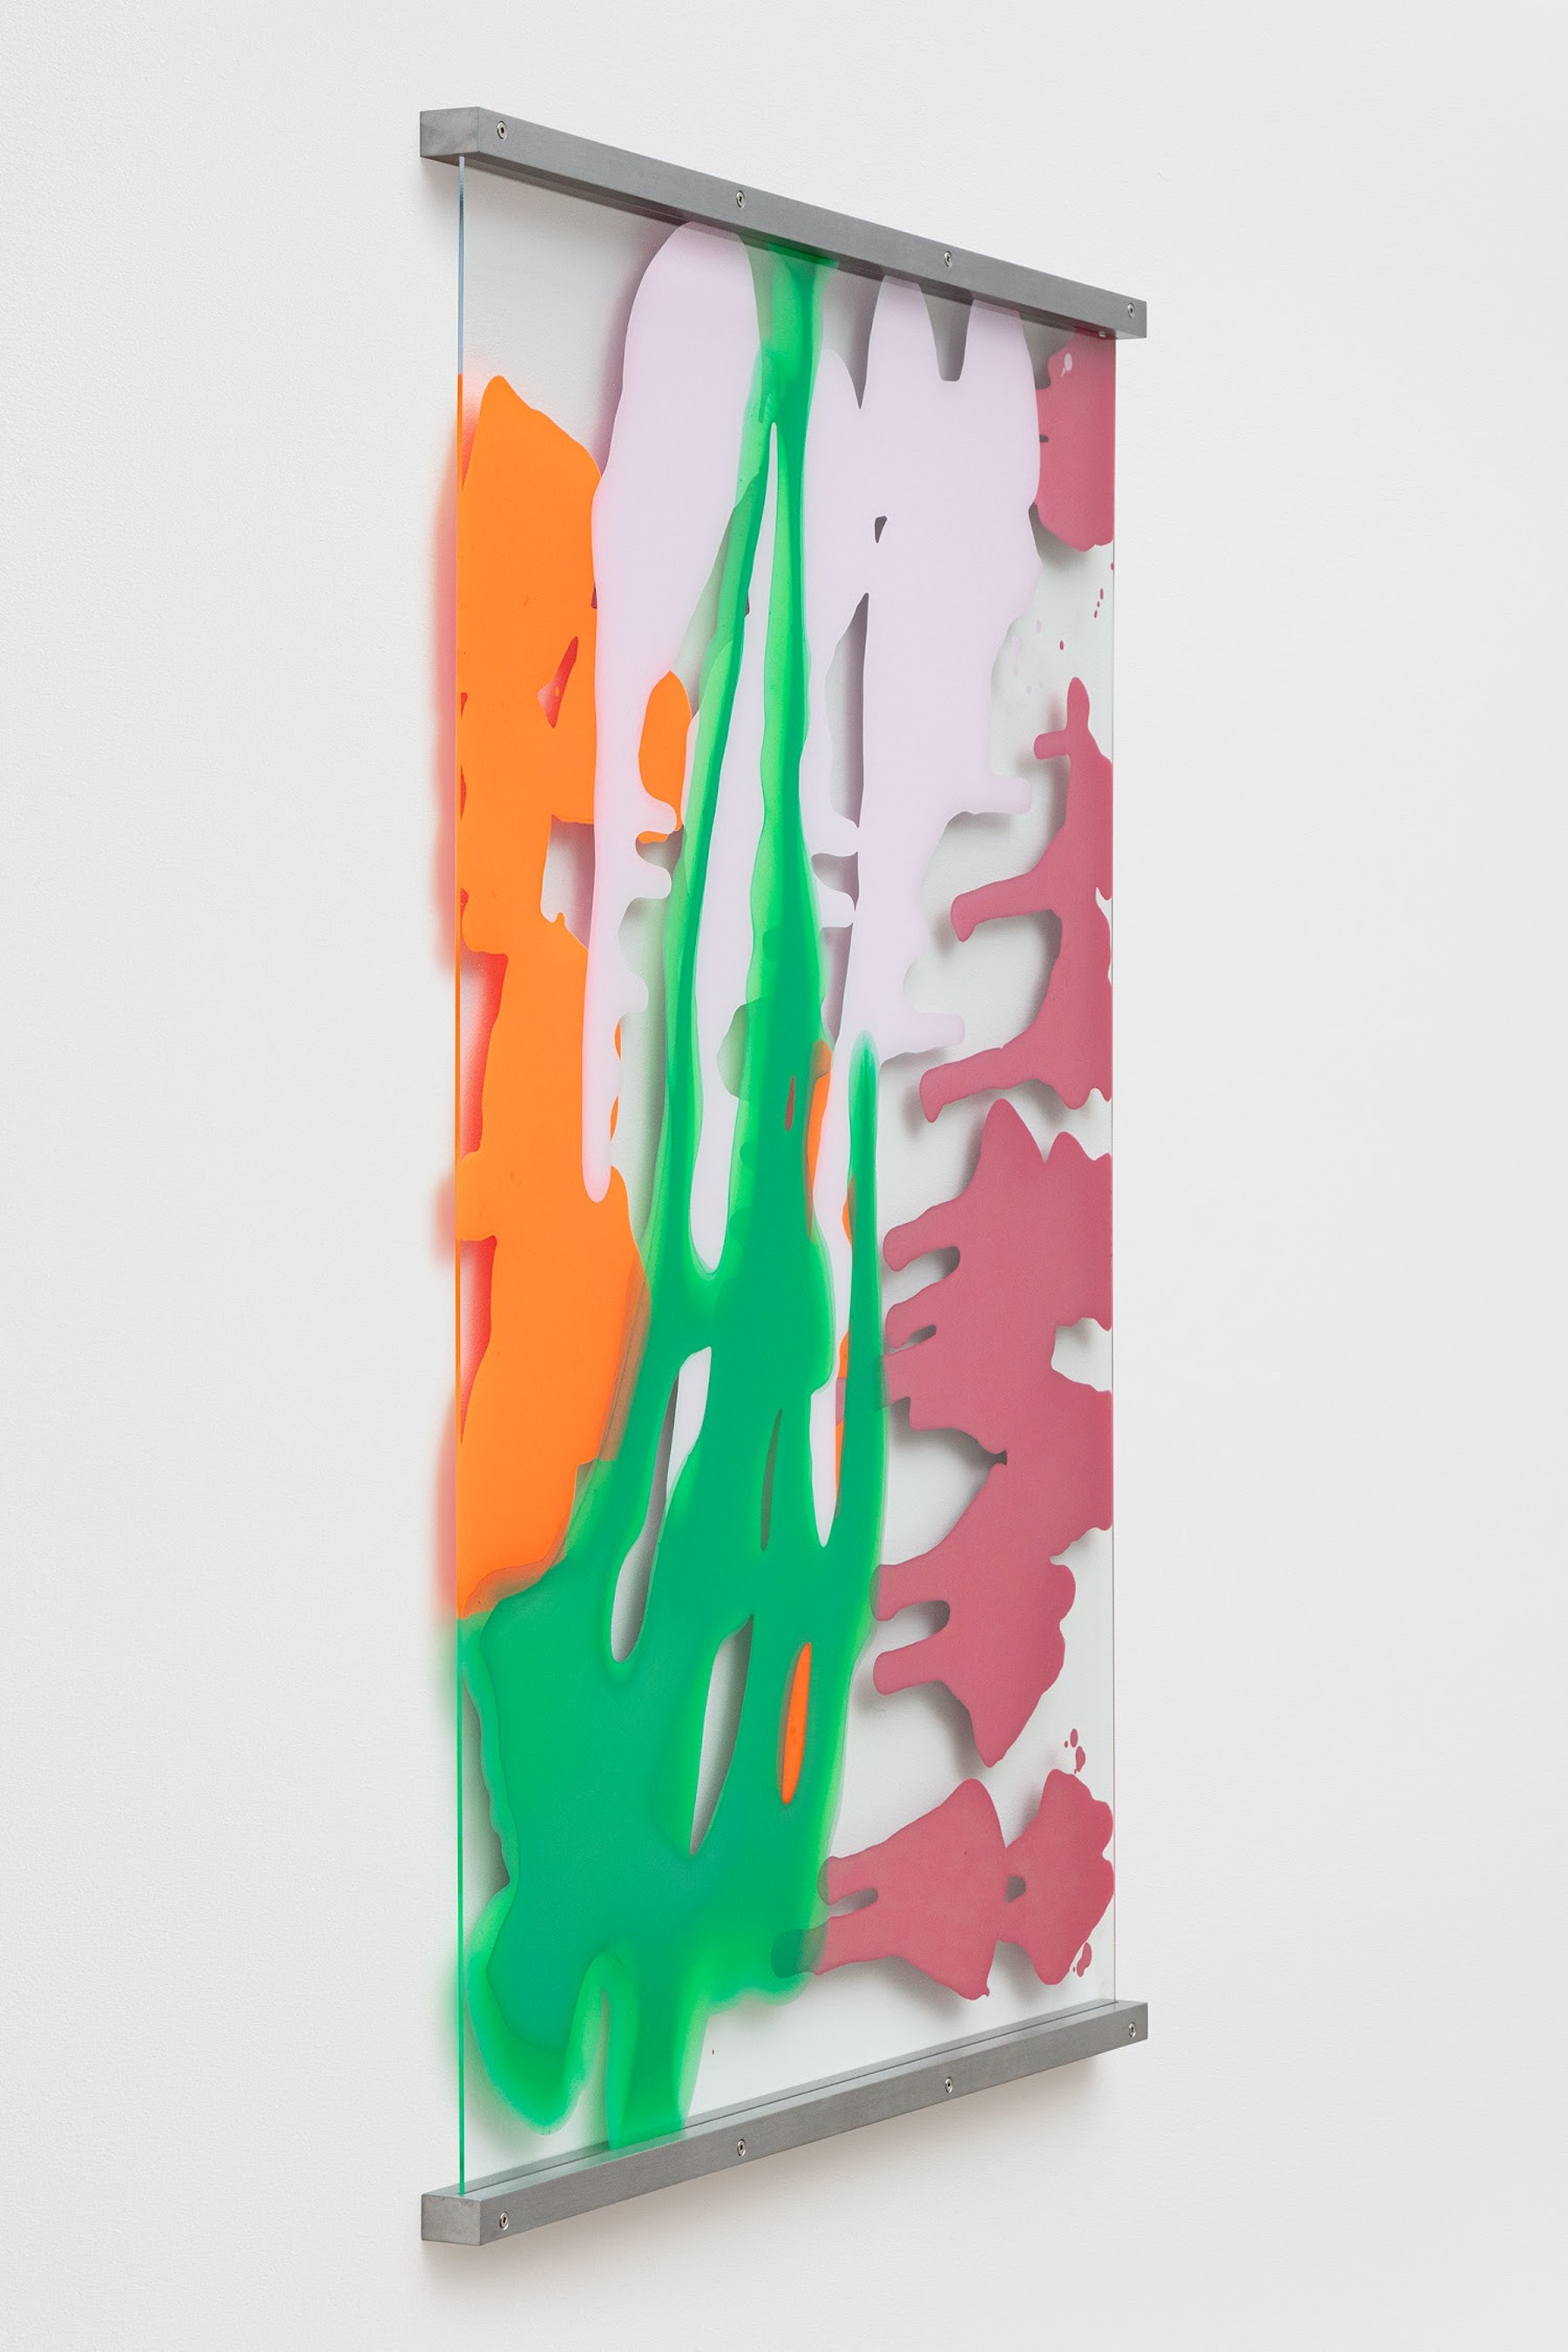 """Yunhee Min """"Vitreous Opacities (Single Wall #1),"""" 2021 Enamel, acrylic on tempered starphire glass with aluminum frame 45"""" x 34"""" [HxW] (114.3 x 86.36 cm); 46 ¹⁄₂"""" x 35"""" x 1 ¹⁄₂"""" [HxWxD] (118.11 x 88.9 x 3.81 cm) framed Inventory #MIN349 Courtesy of the artist and Vielmetter Los Angeles Photo credit: Evan Bedford"""